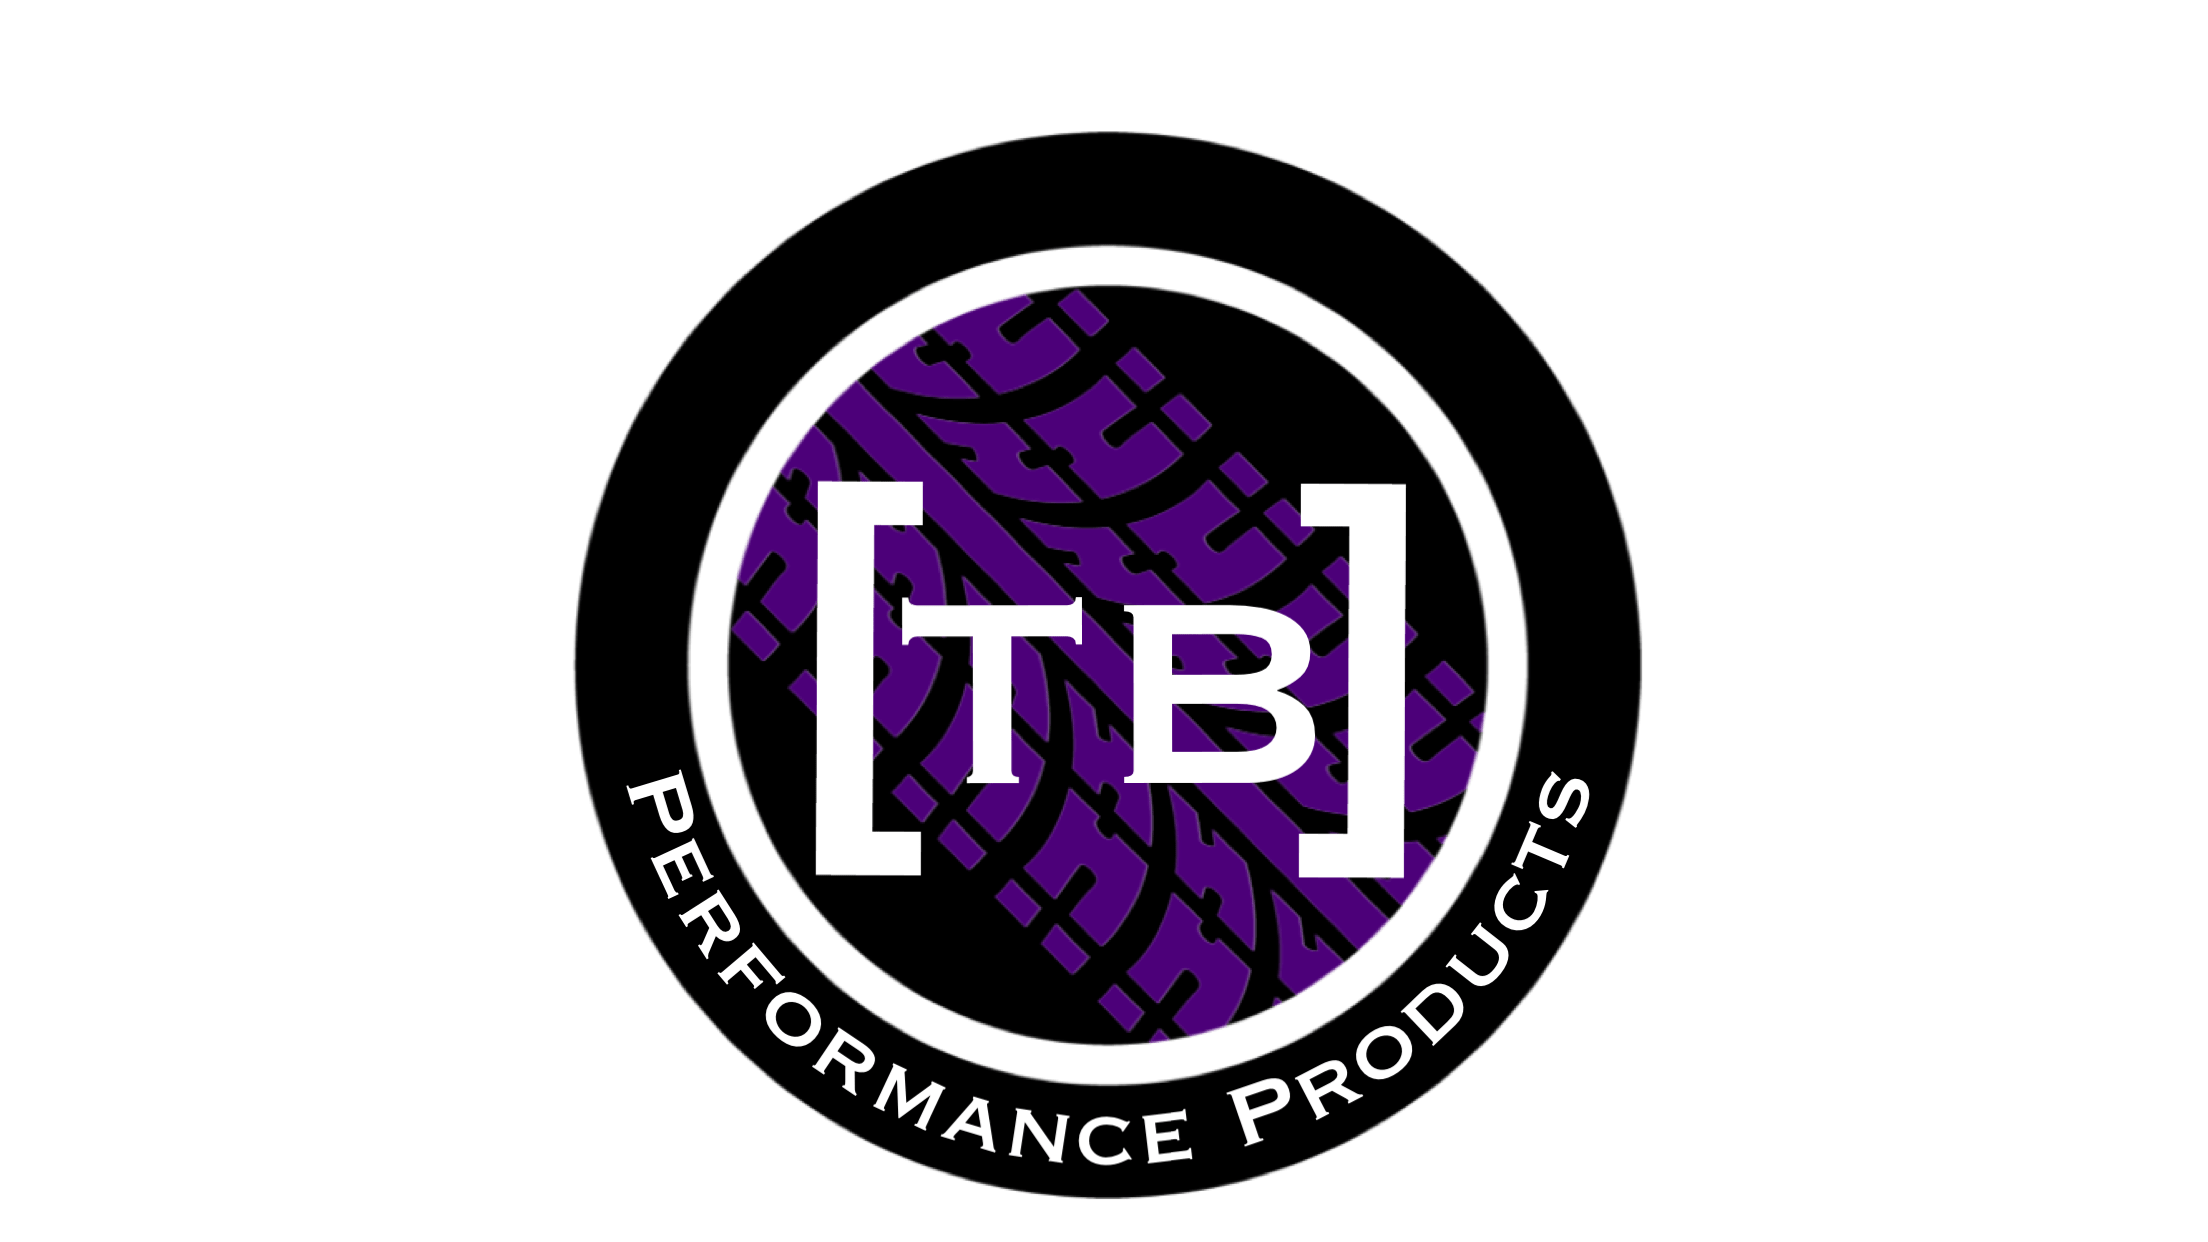 TBPerformance Products